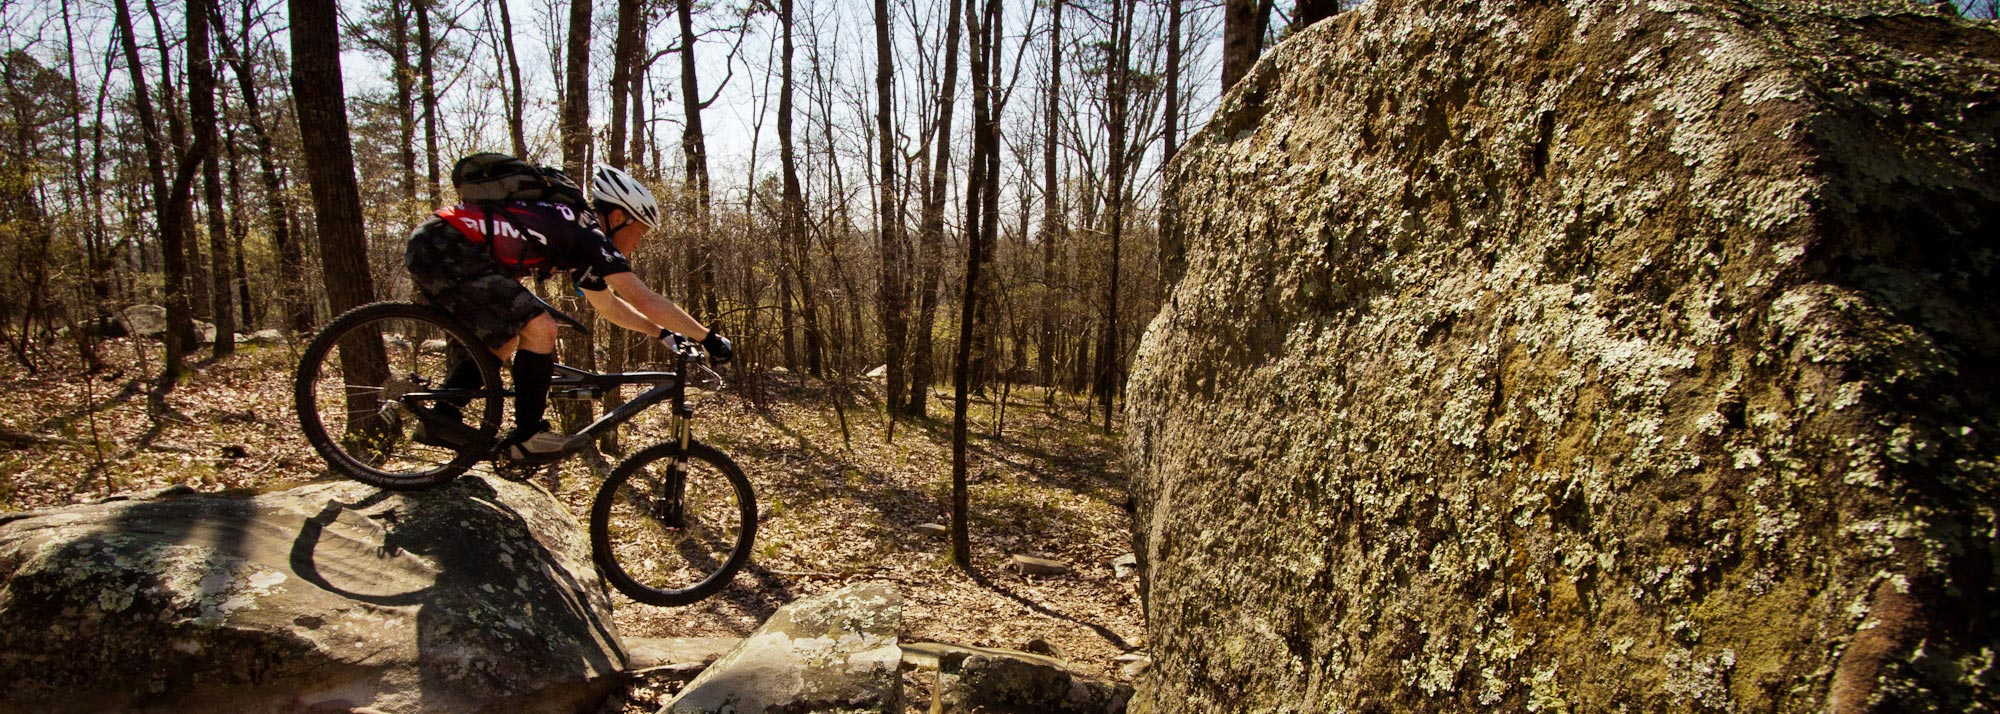 riding over mossy rocks